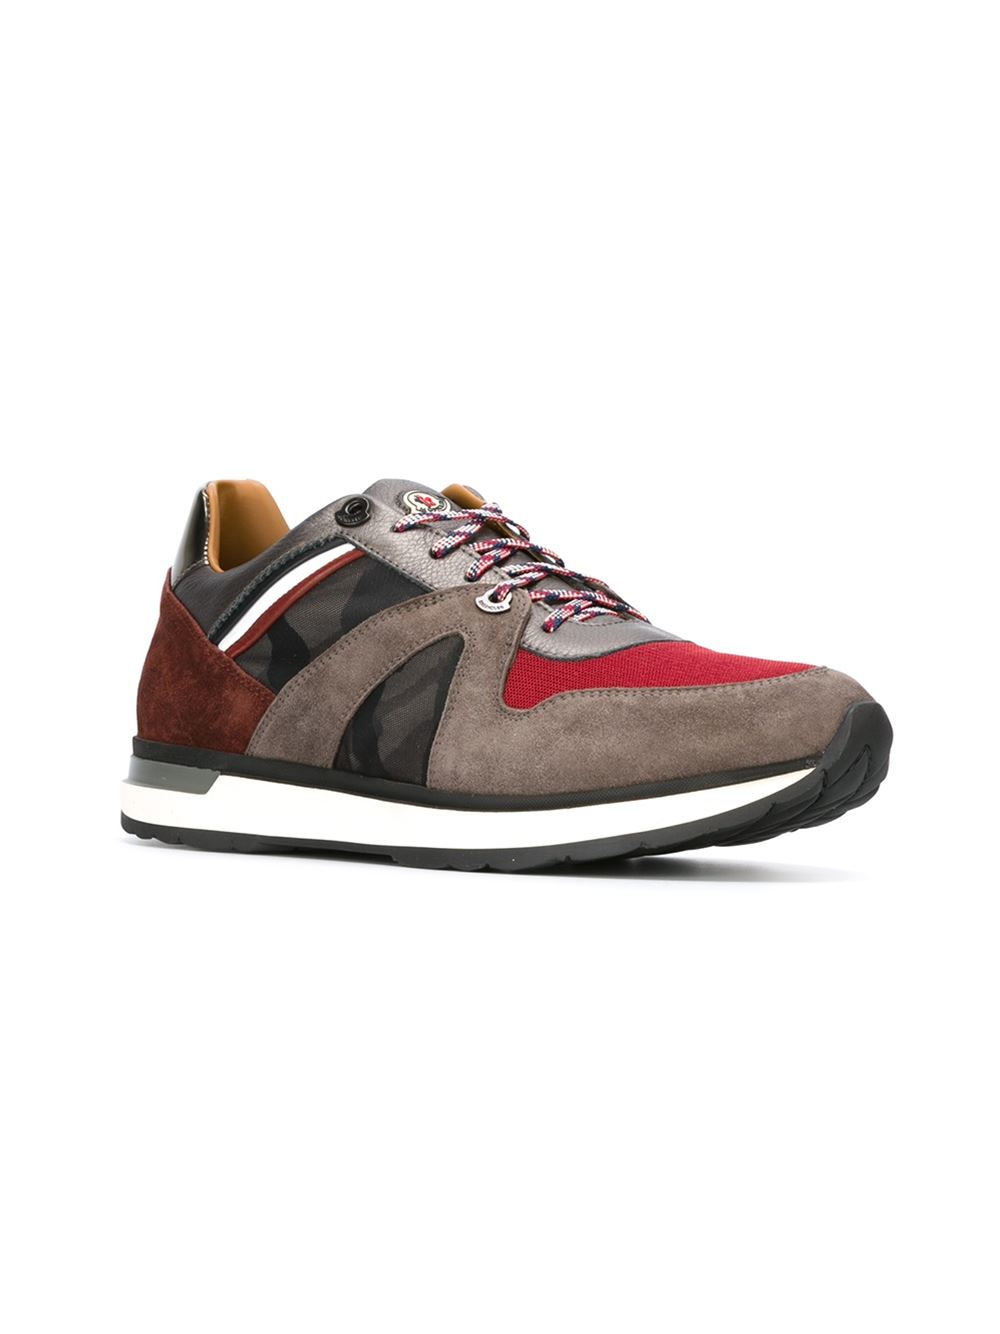 moncler montego sneakers in multicolor for